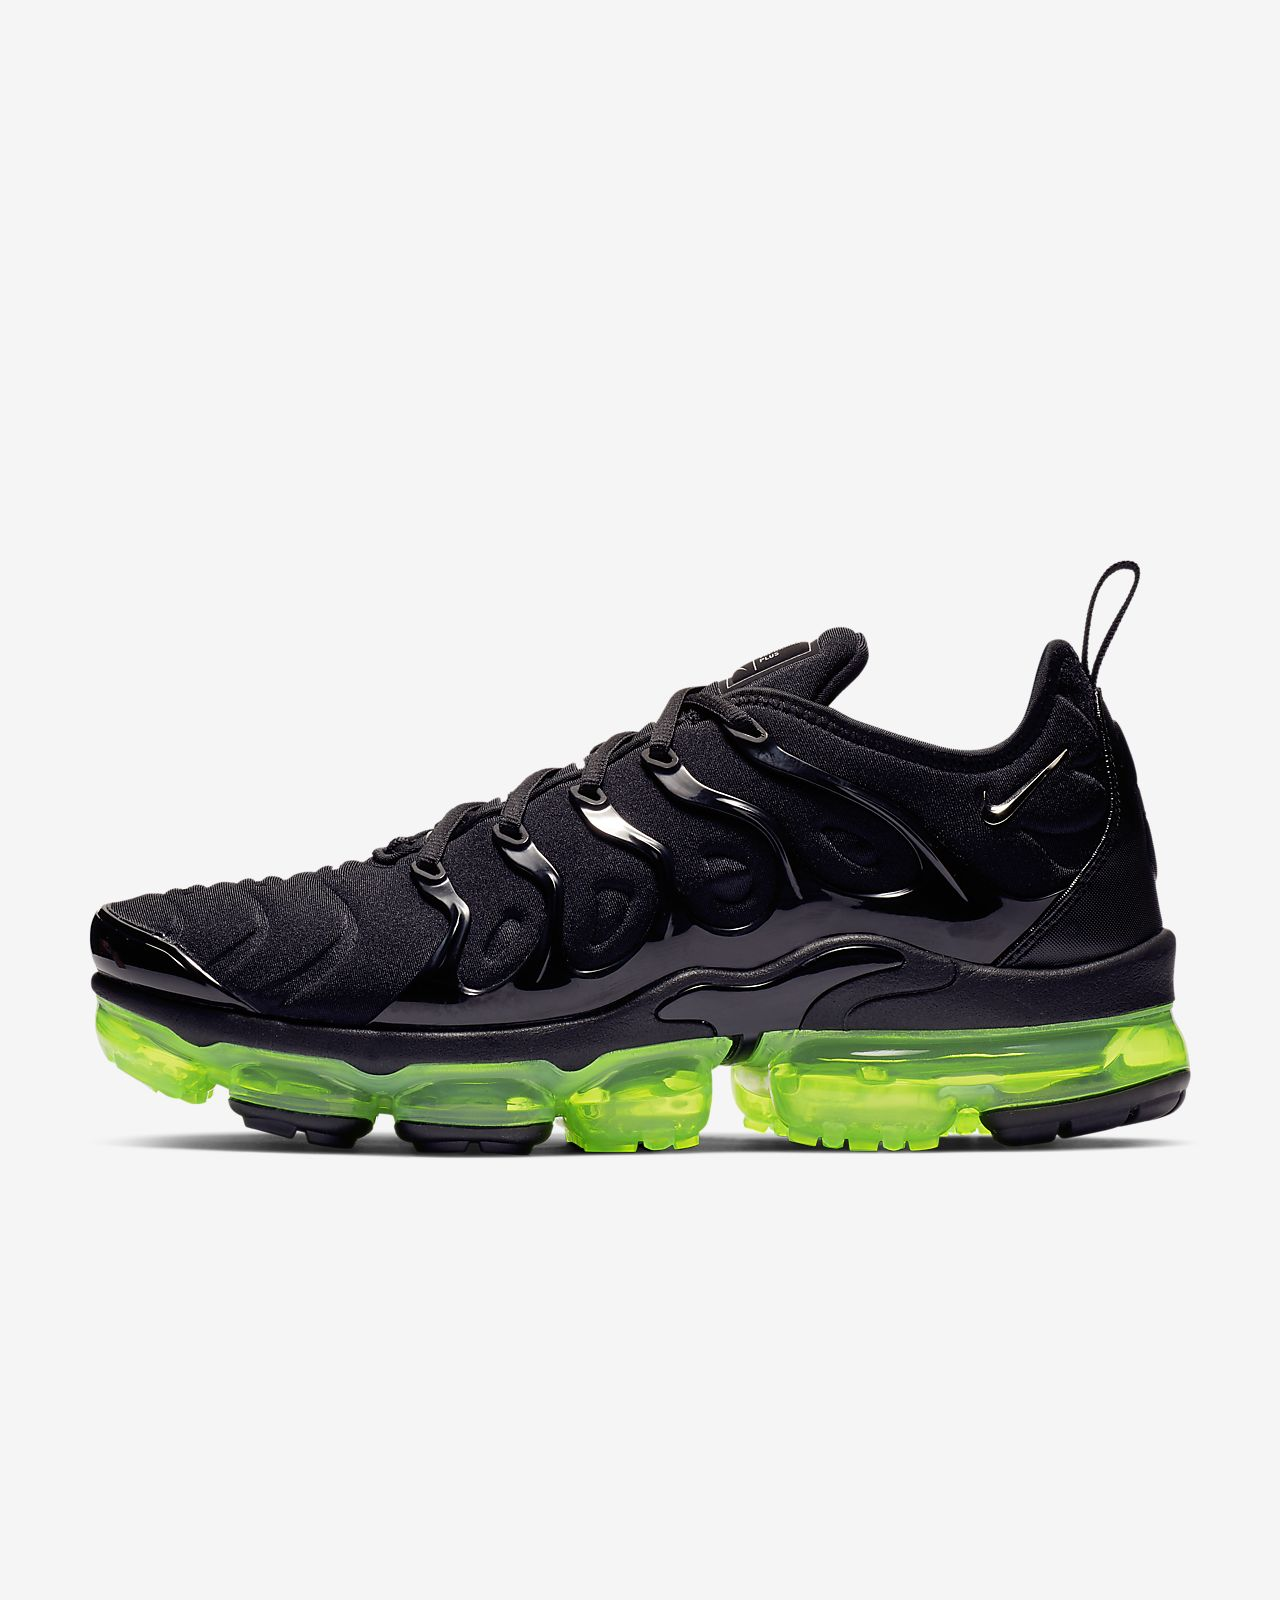 297cd9274bf Chaussure Nike Air VaporMax Plus pour Homme. Nike.com CA